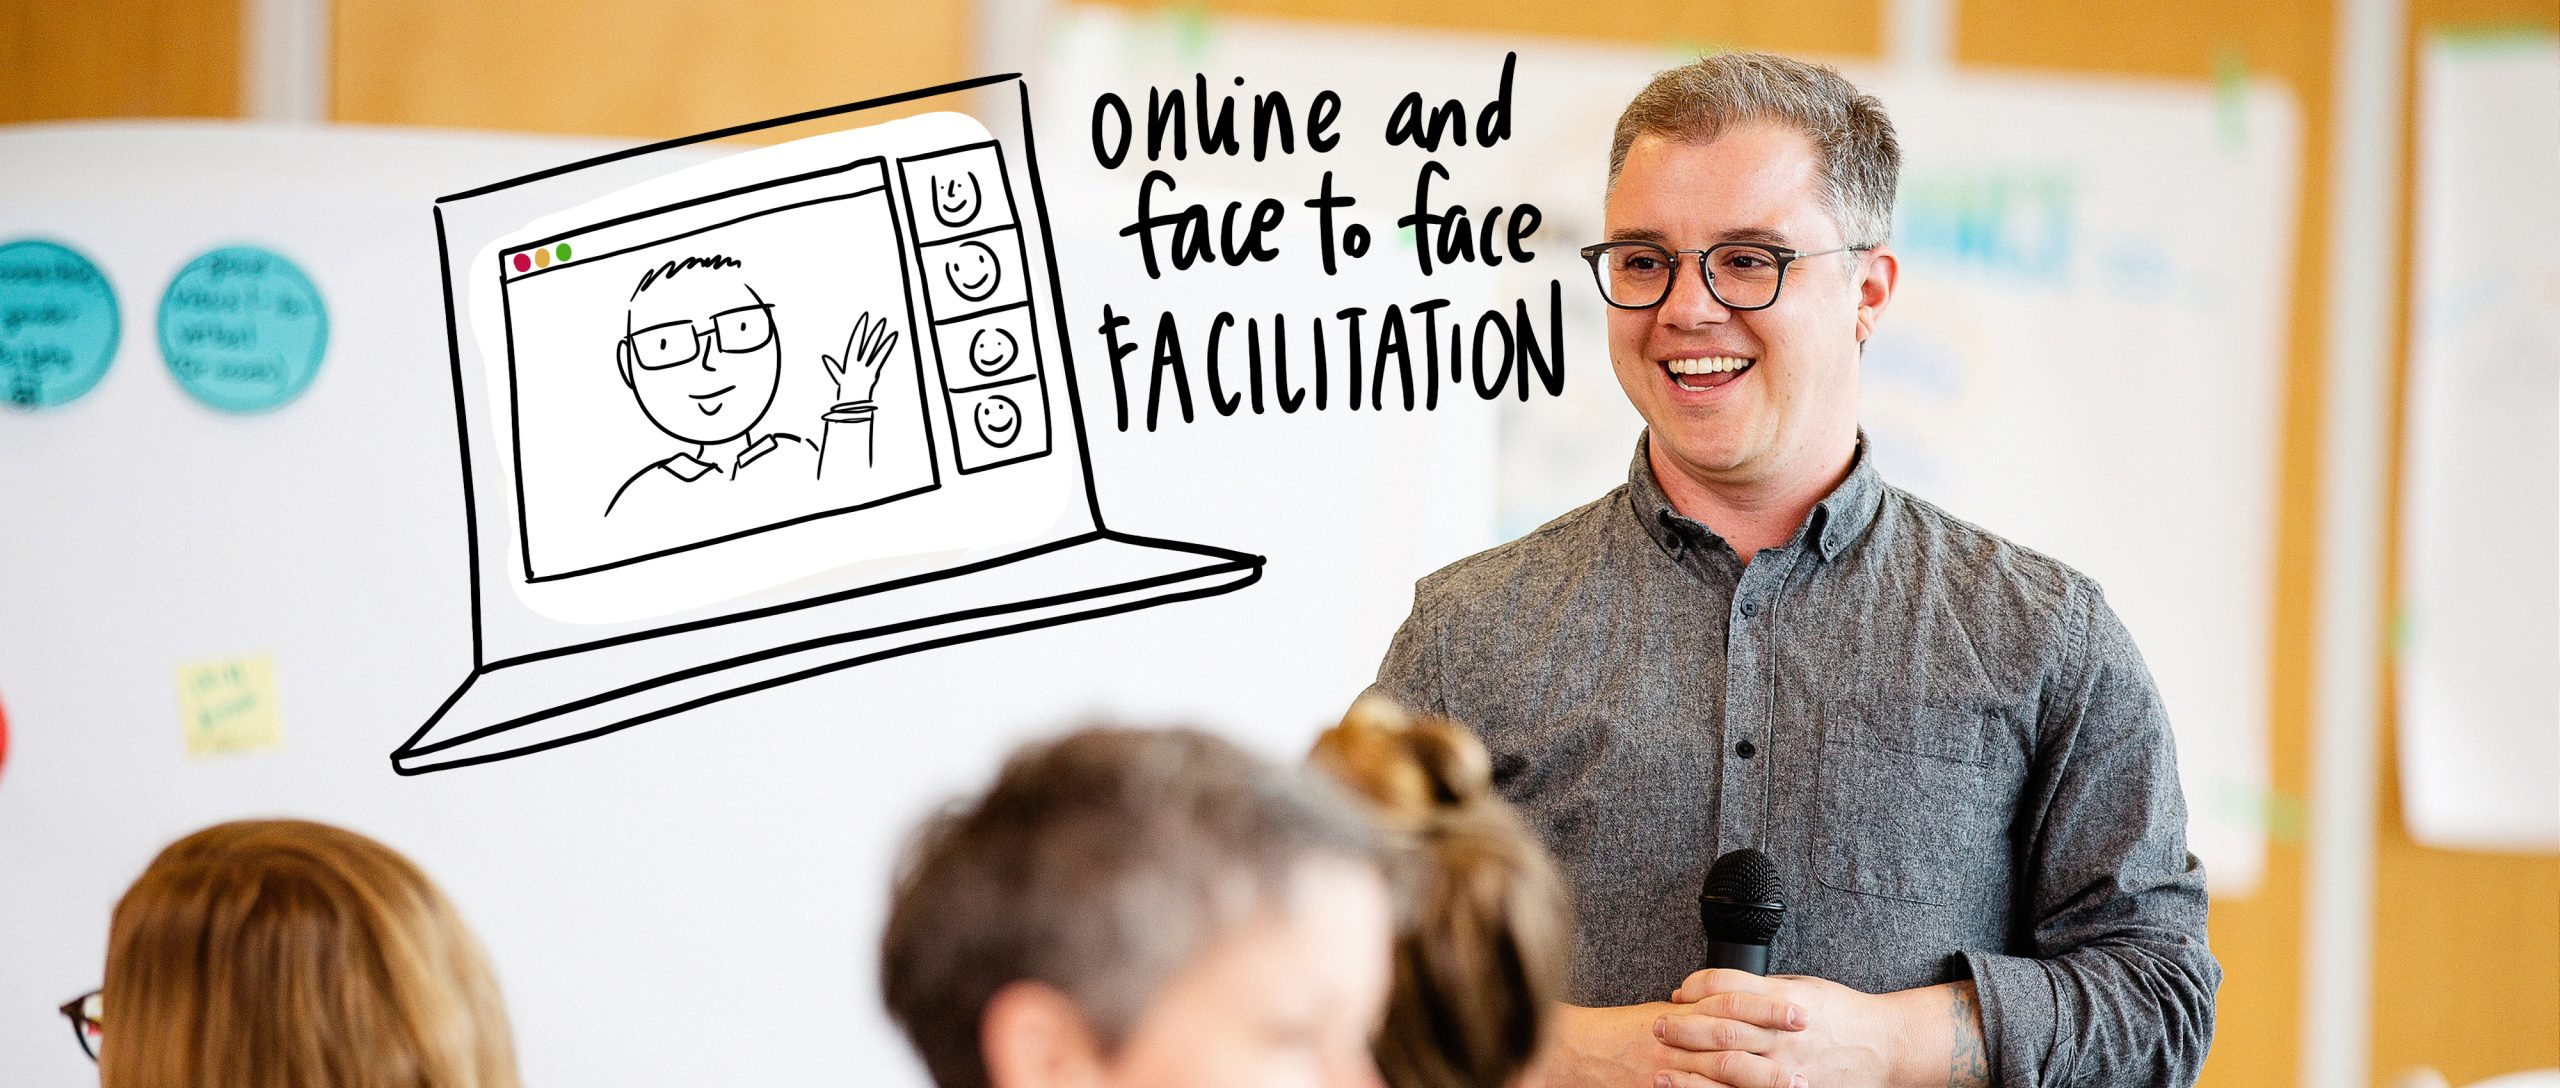 sam bradd meeting facilitation image